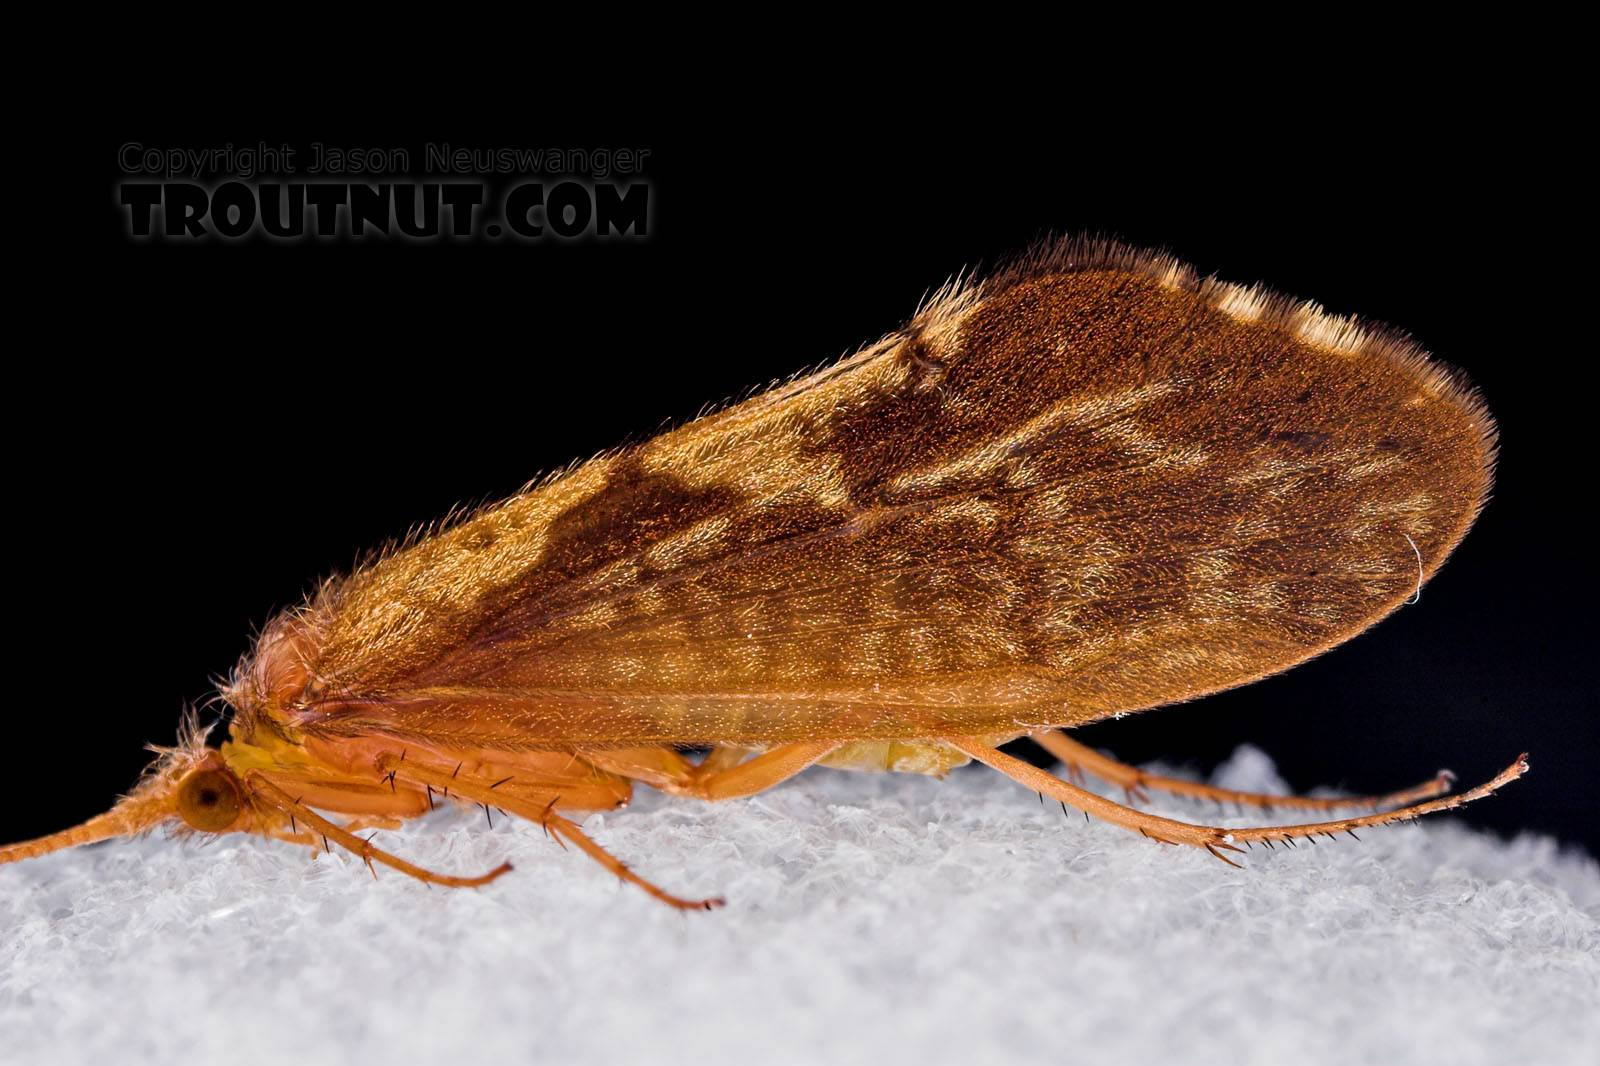 Neophylax (Autumn Mottled Sedges) Caddisfly Adult from Mystery Creek #43 in New York